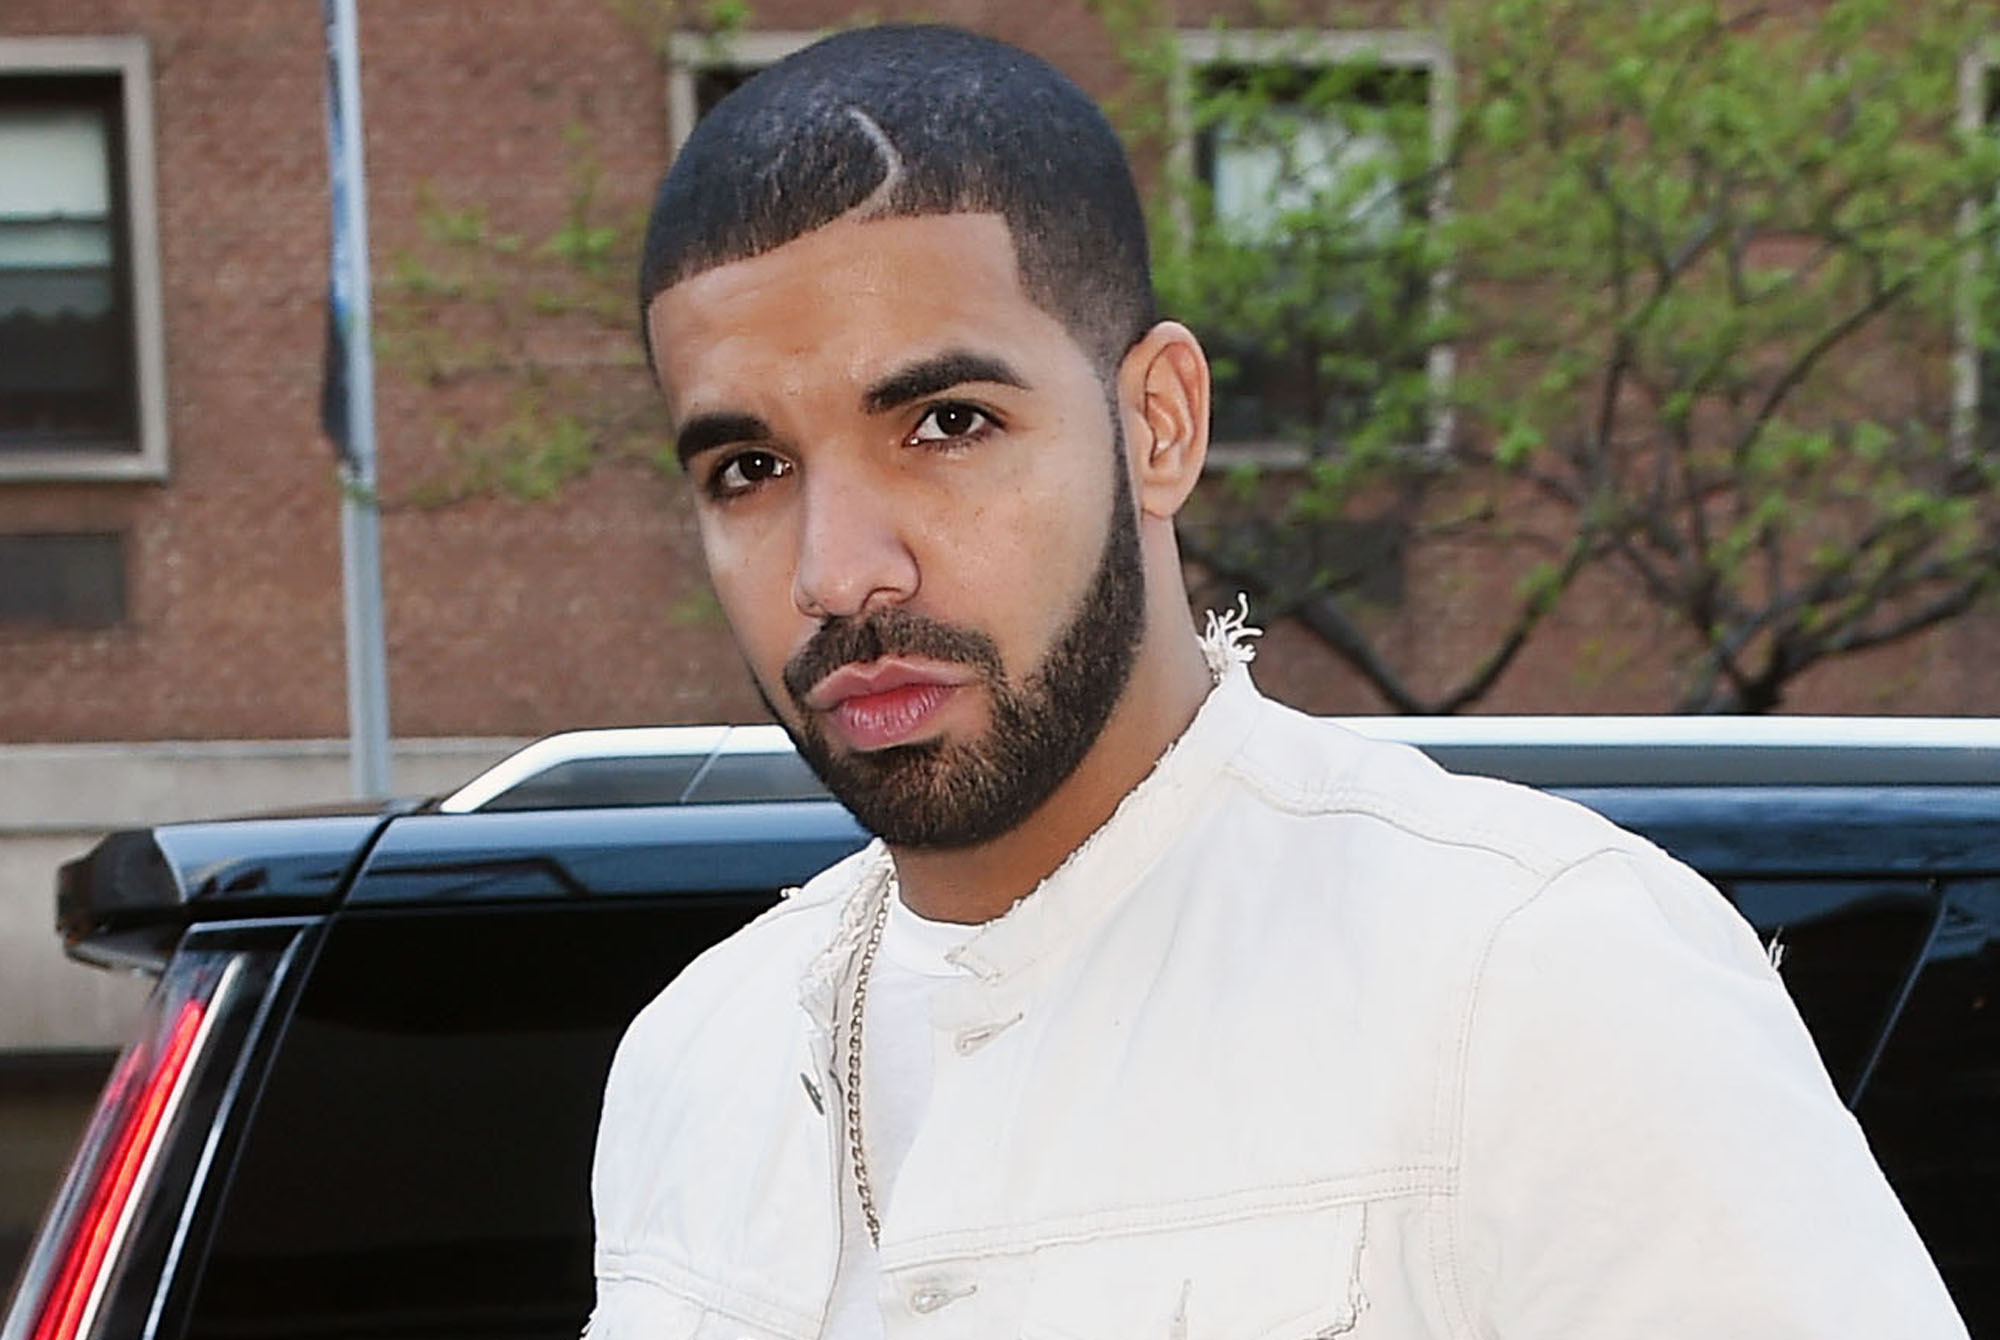 Intruder Inside Drakes Home Only Raided Rappers Fridge Perception